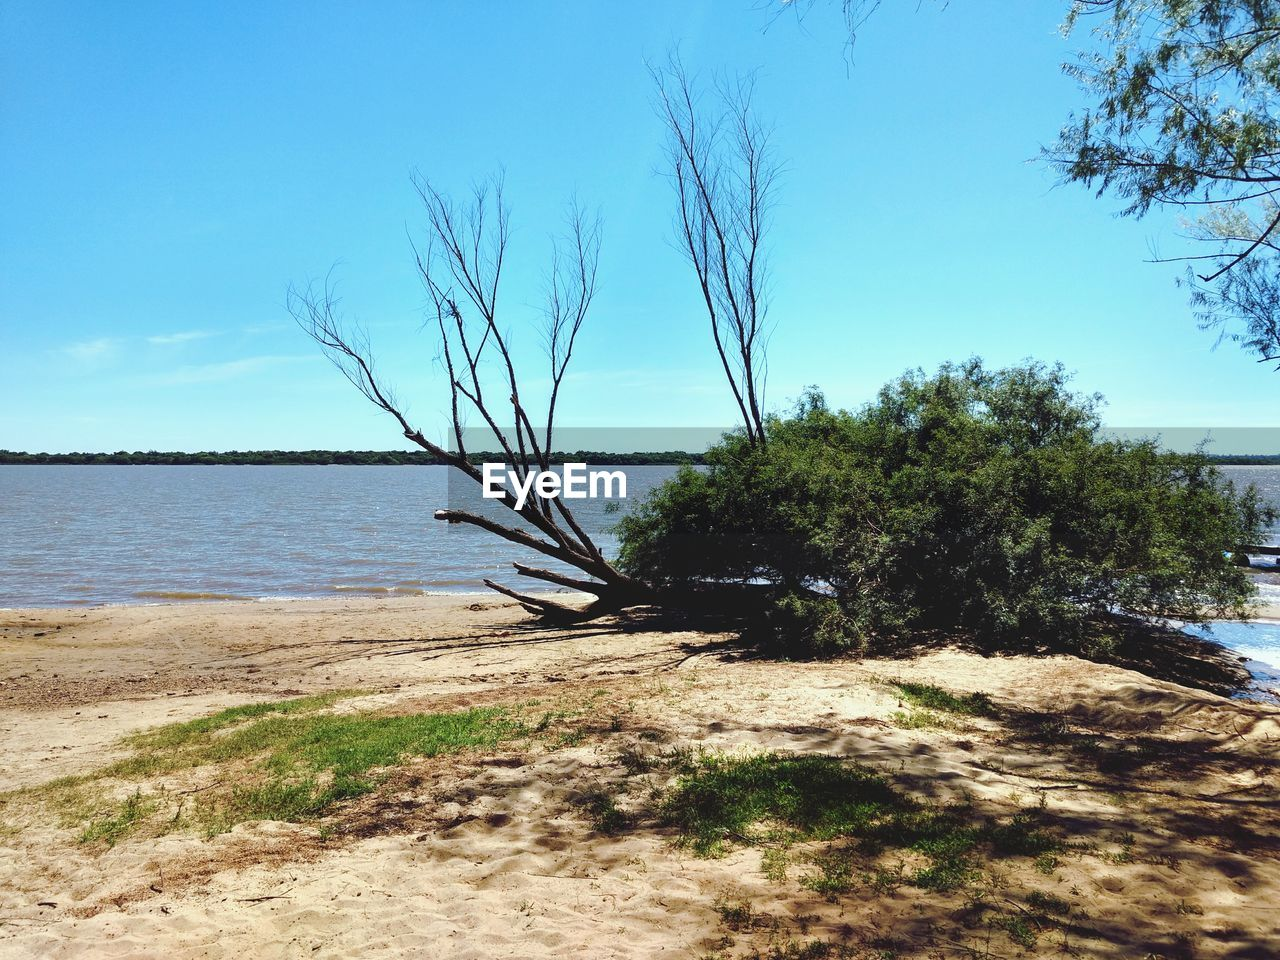 tree, nature, tranquility, tranquil scene, beauty in nature, day, scenics, sky, water, sea, sand, no people, outdoors, beach, sunlight, growth, horizon over water